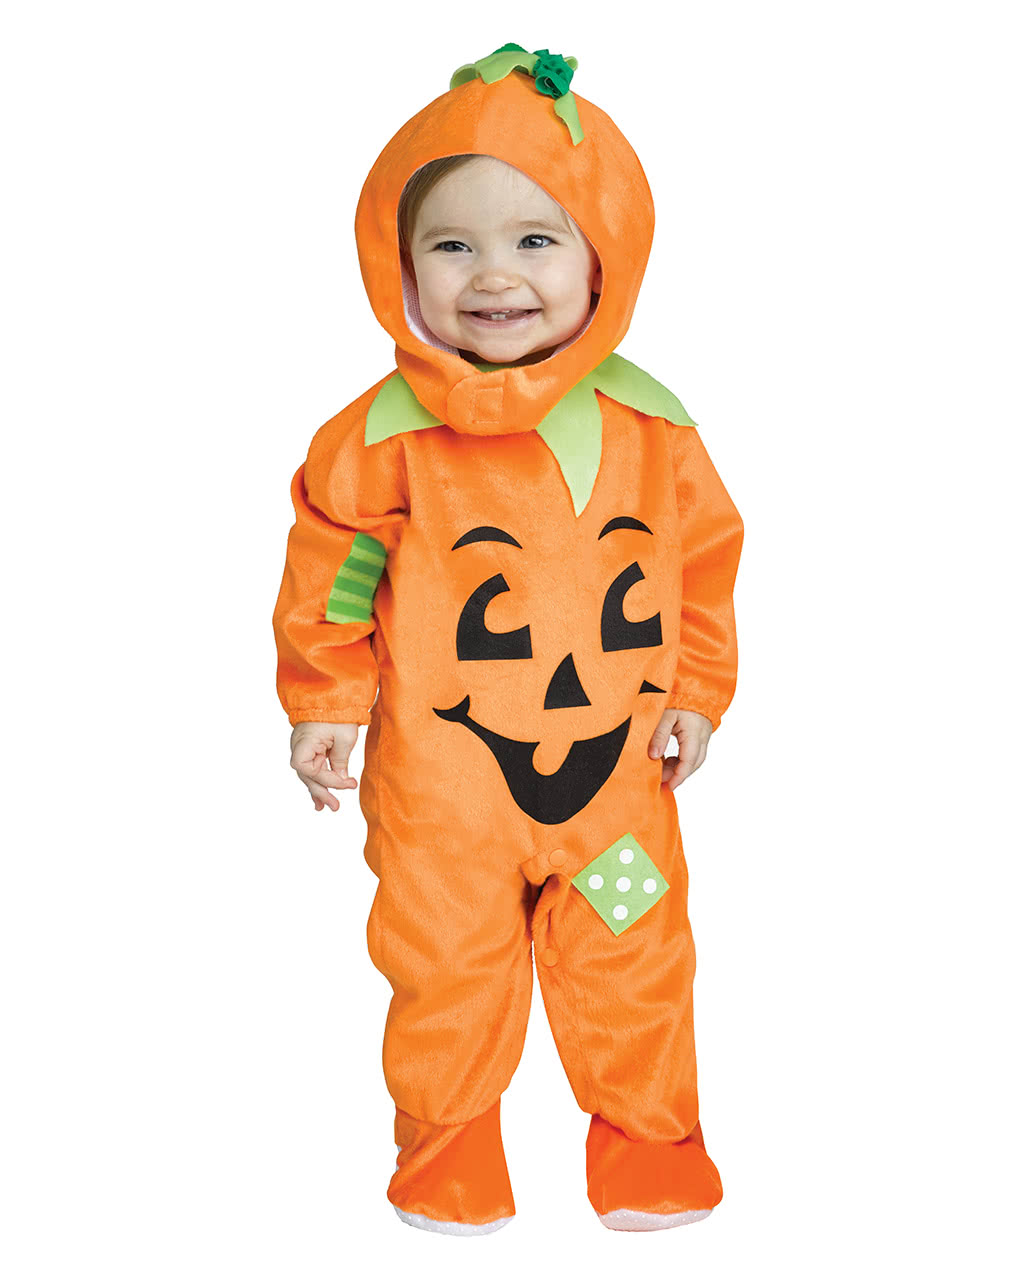 Naughty Pumpkin Costume Toddlers | Halloween costume for your little one | horror-shop.com  sc 1 st  Horror-Shop.com & Naughty Pumpkin Costume Toddlers | Halloween costume for your little ...